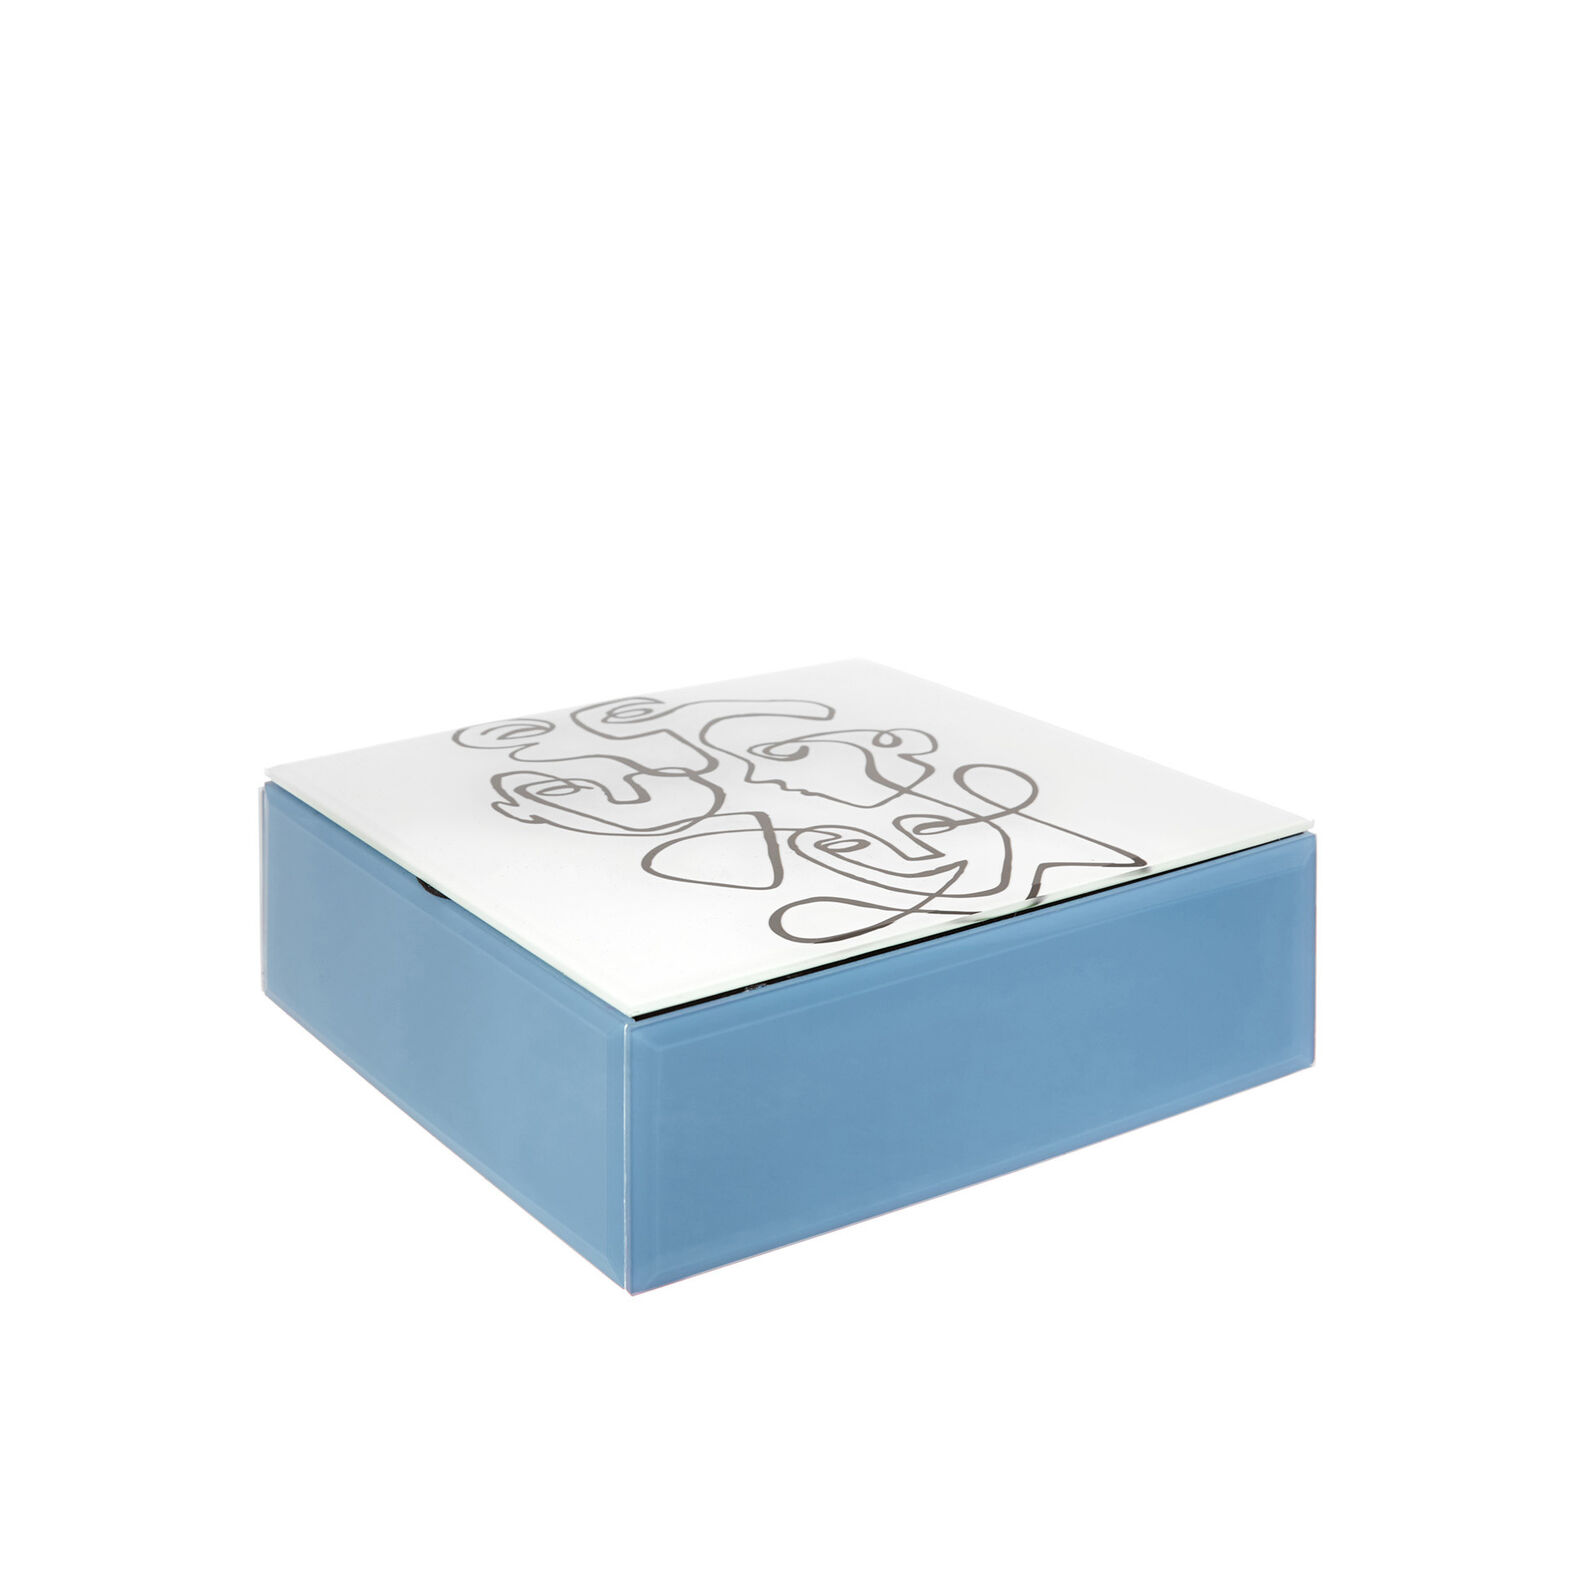 Glass jewellery box with abstract motif